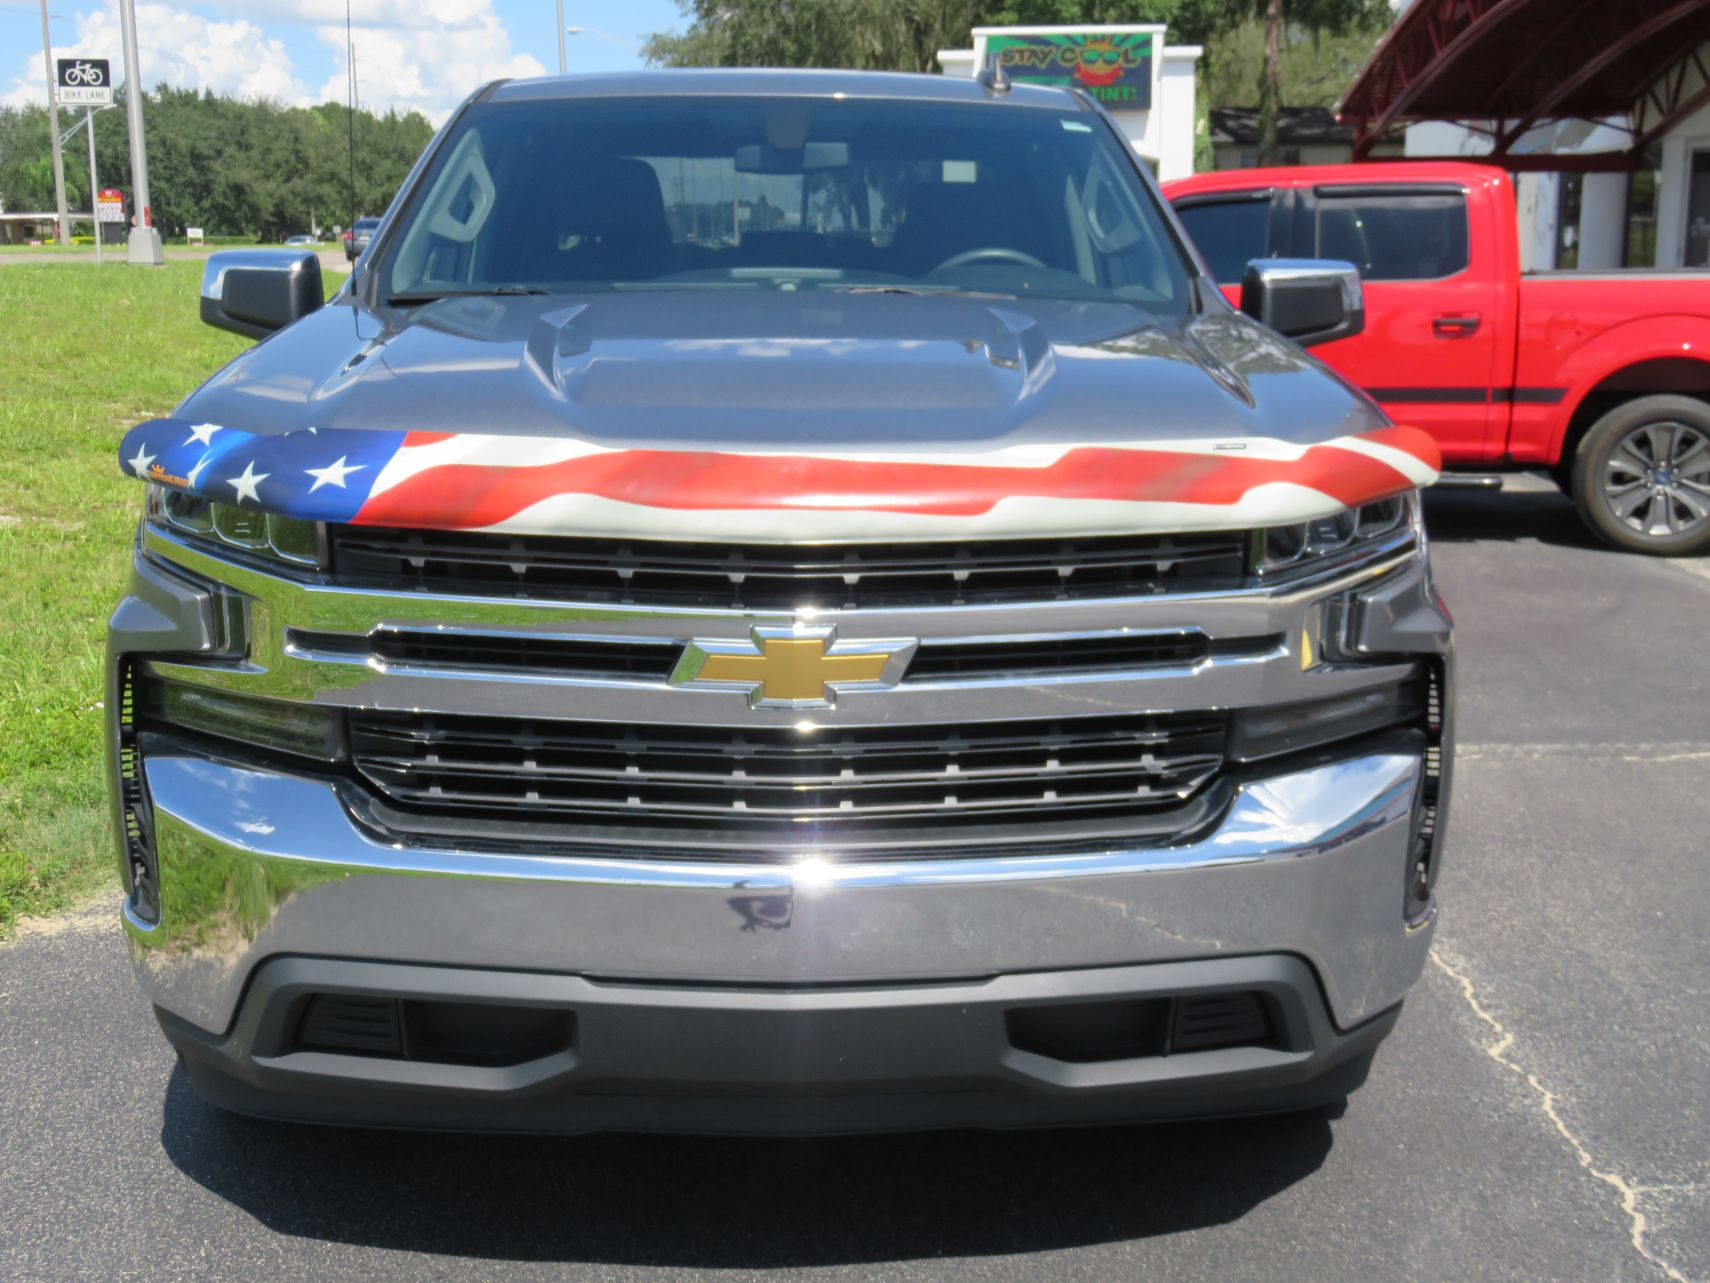 2020 Chevy Silverado with American Flag Hood Guard, Bedliner, Tint, Hitch. Call TopperKING Brandon 813-689-2449 or Clearwater FL 727-530-9066!